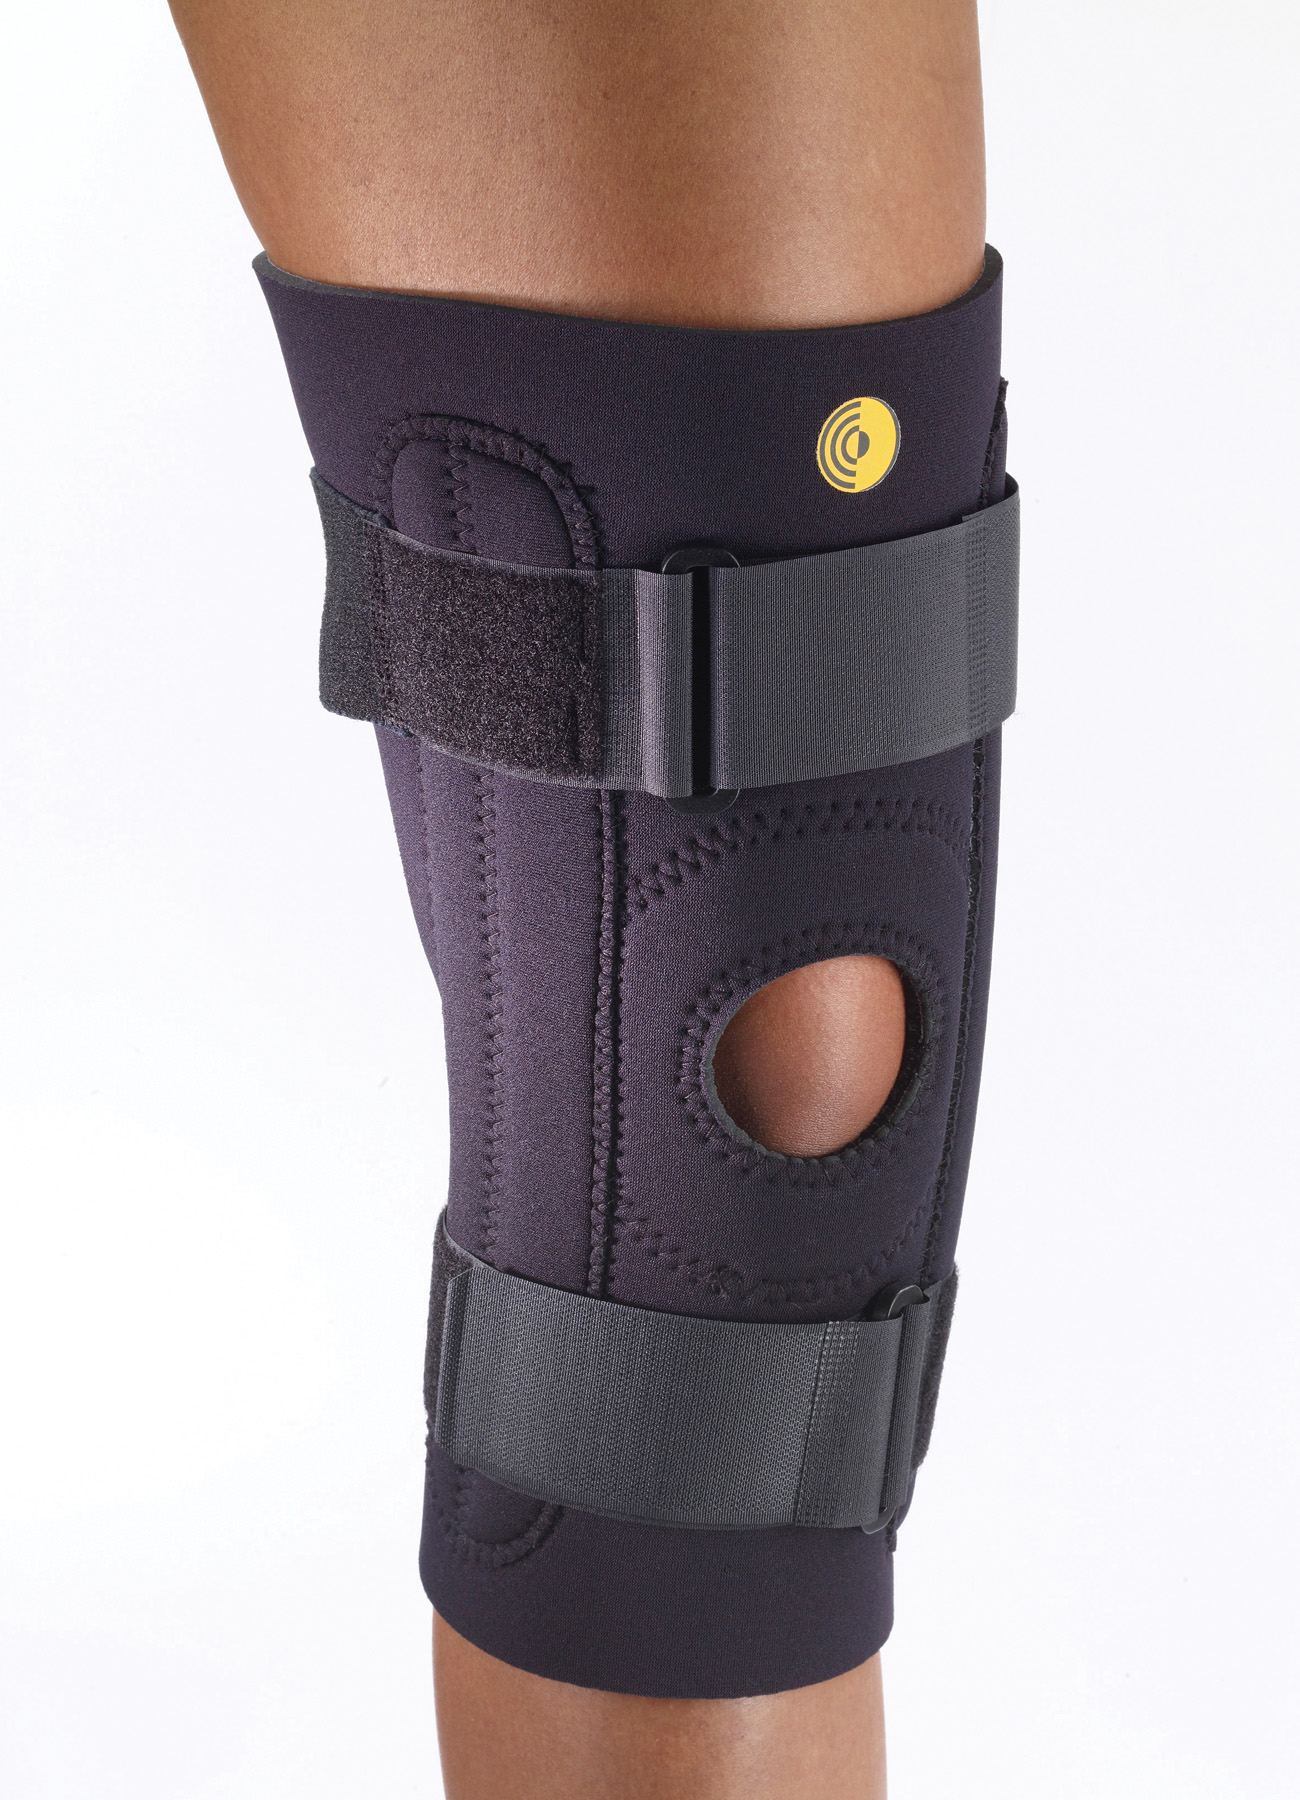 Posterior Adjustable Knee Sleeve w/Cor-Trak Buttress